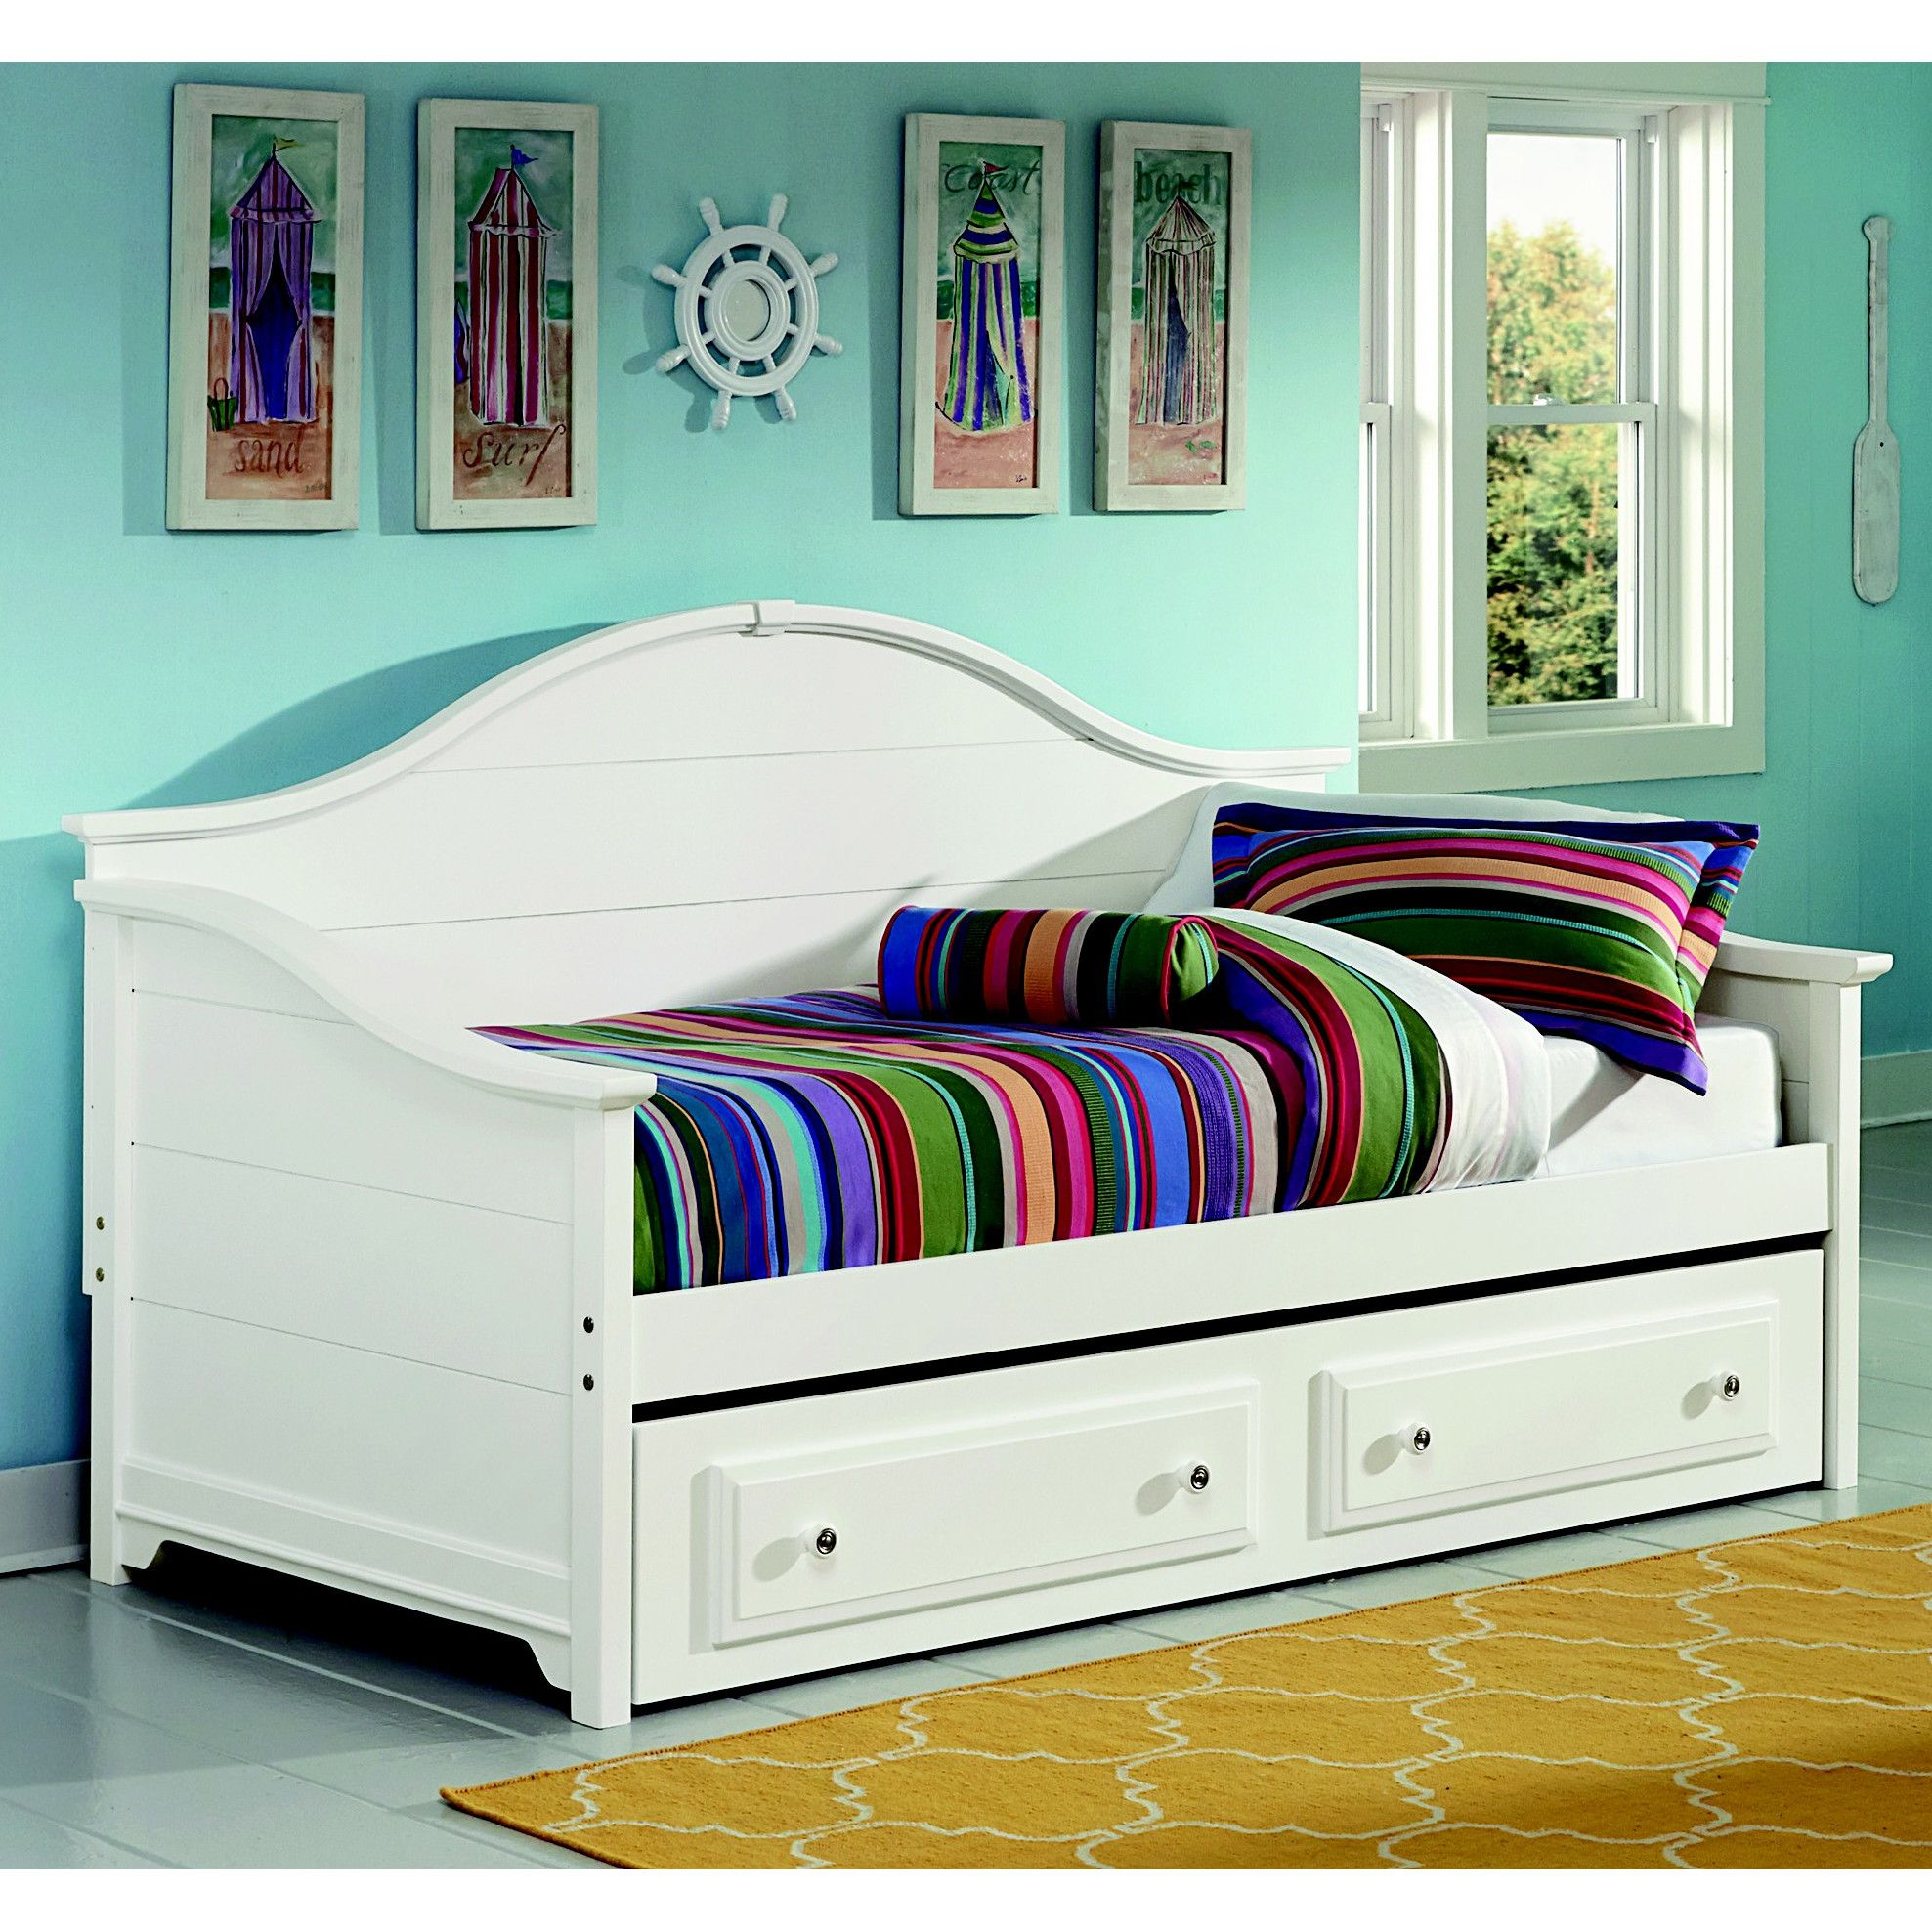 Virginia House Daybed with Trundle Daybed with trundle